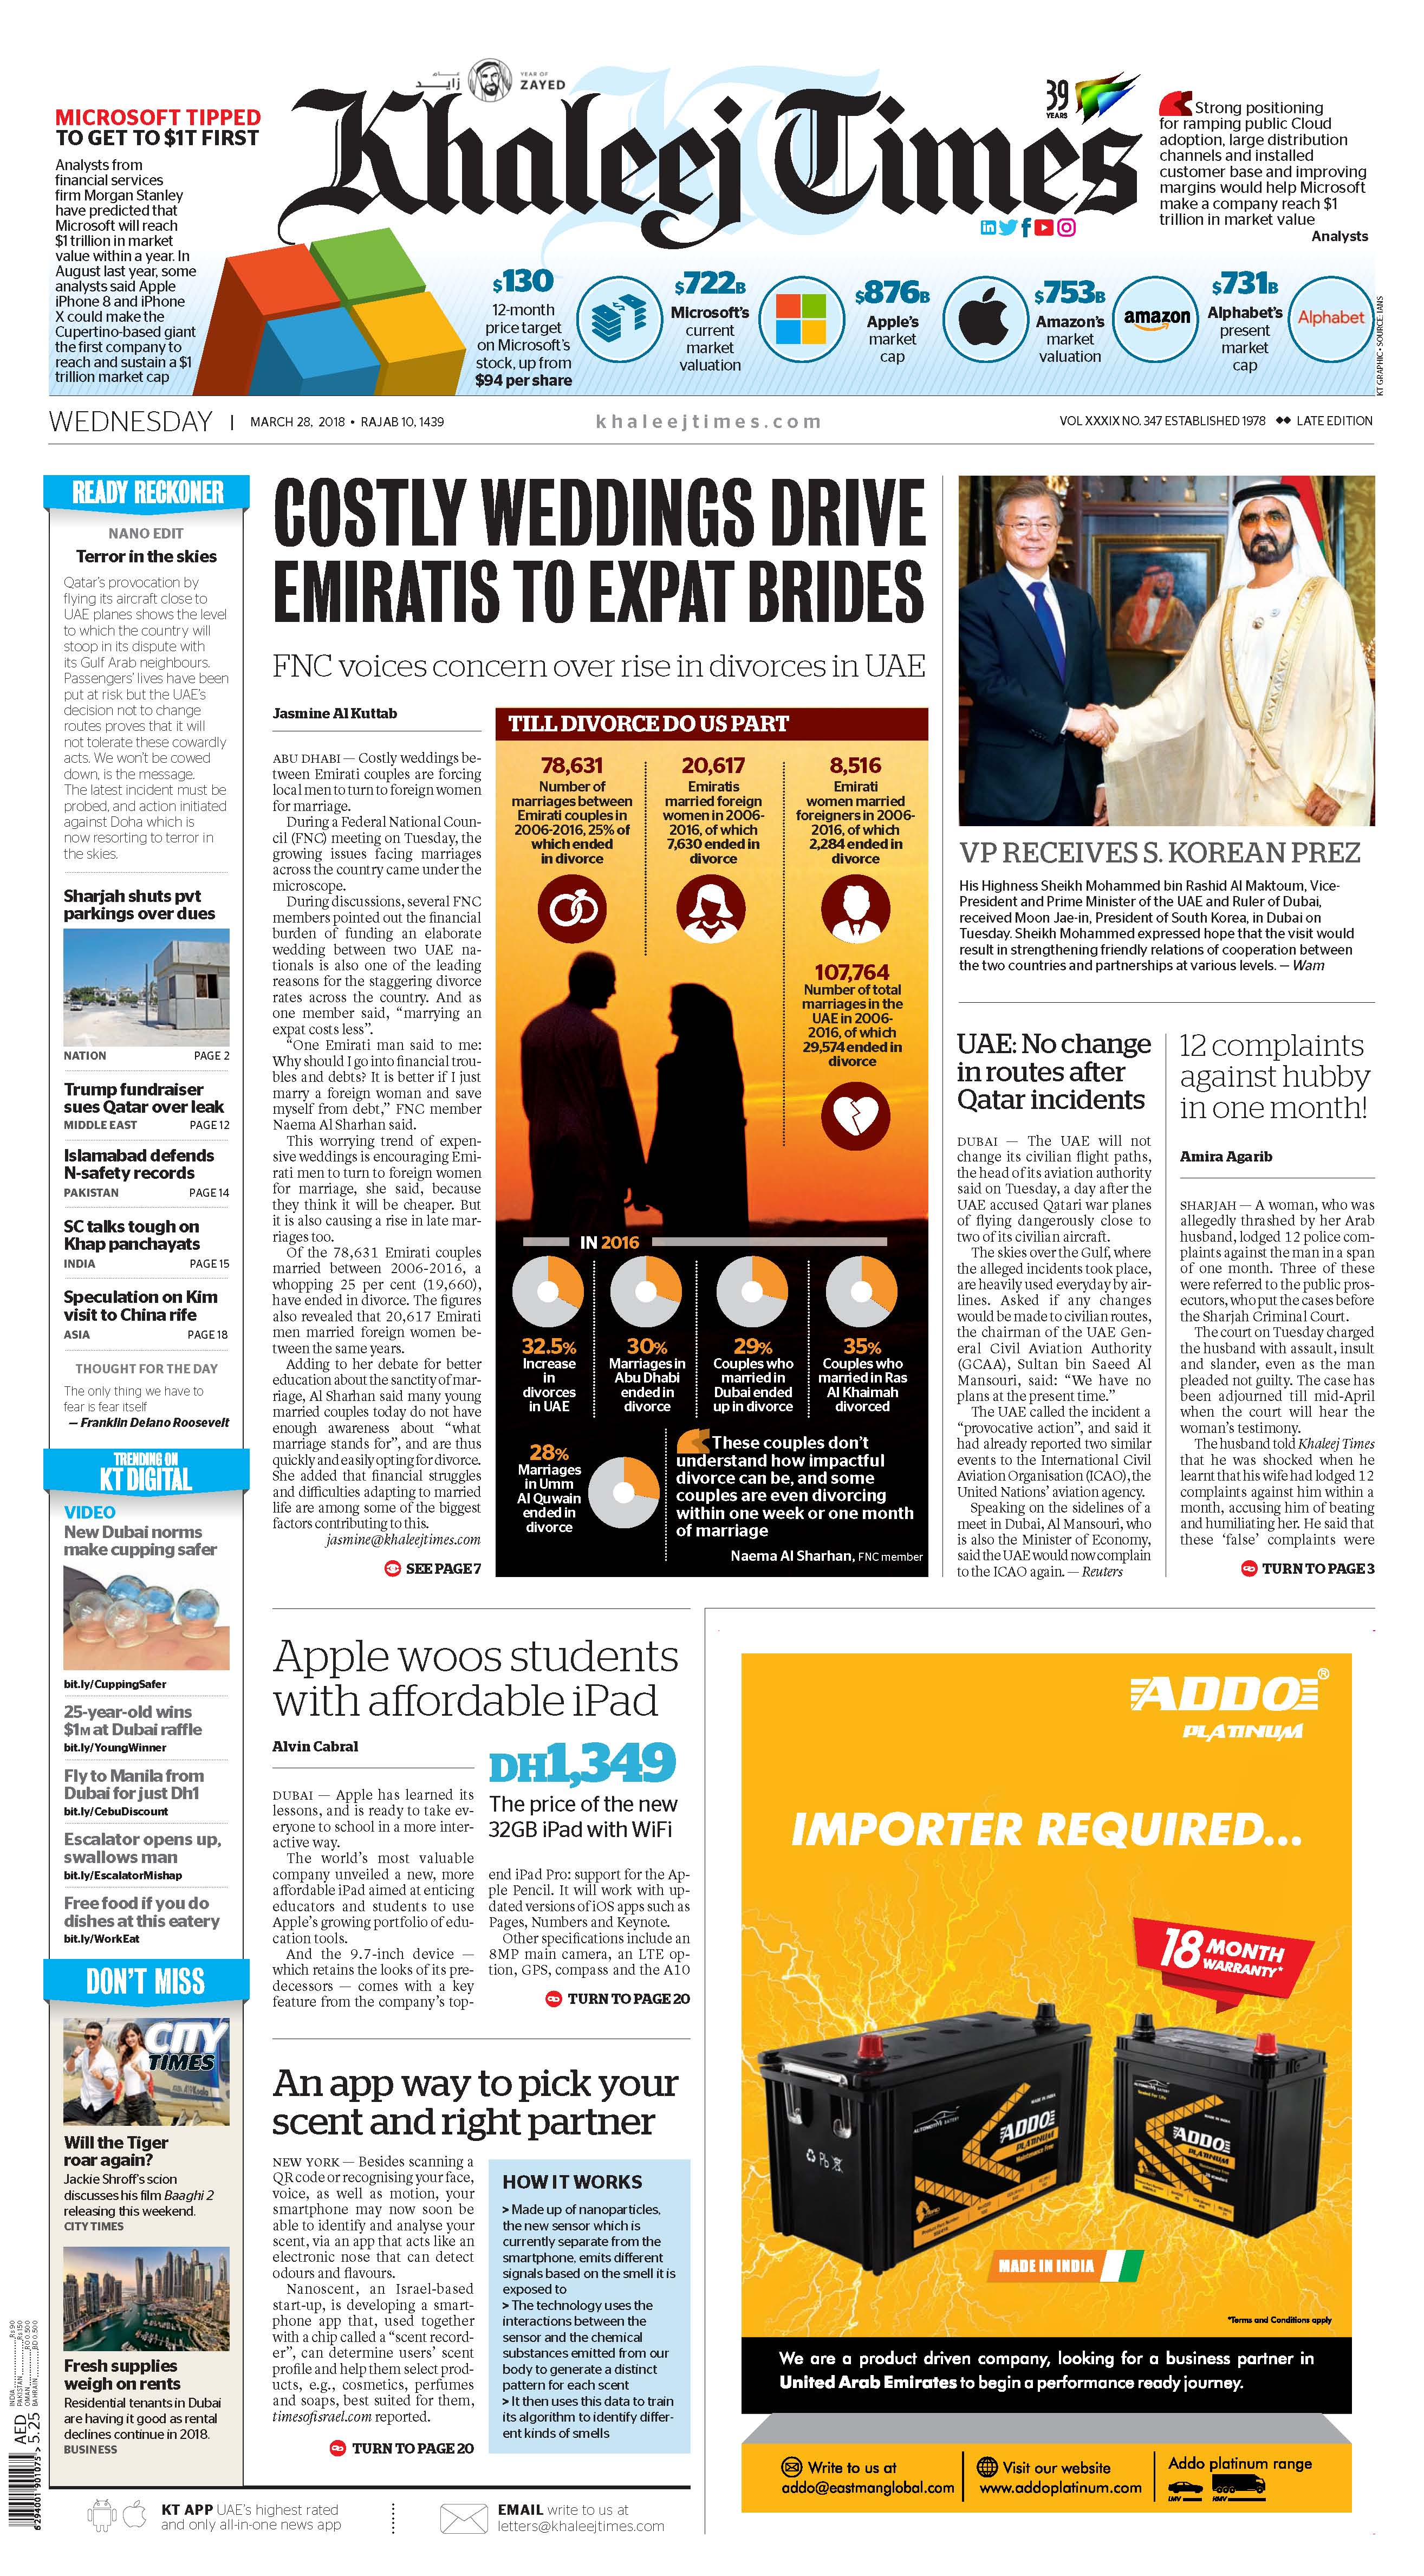 Addo platinum advertisement on Khaleej Times